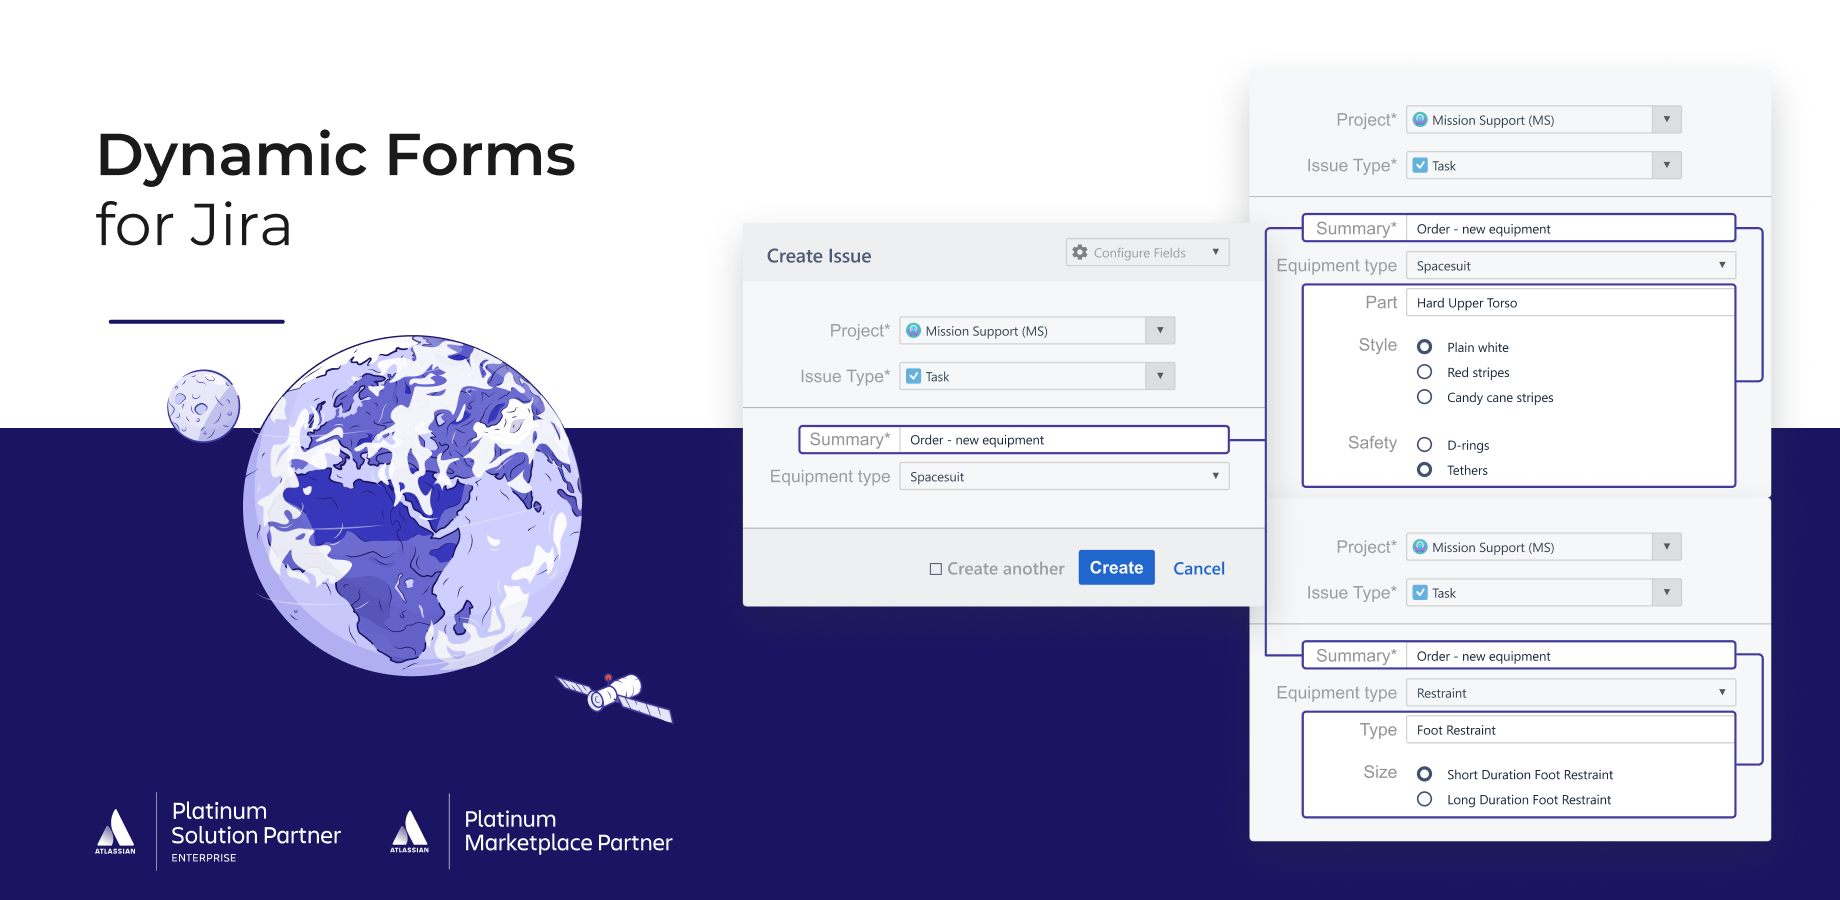 Dynamic Forms for Jira